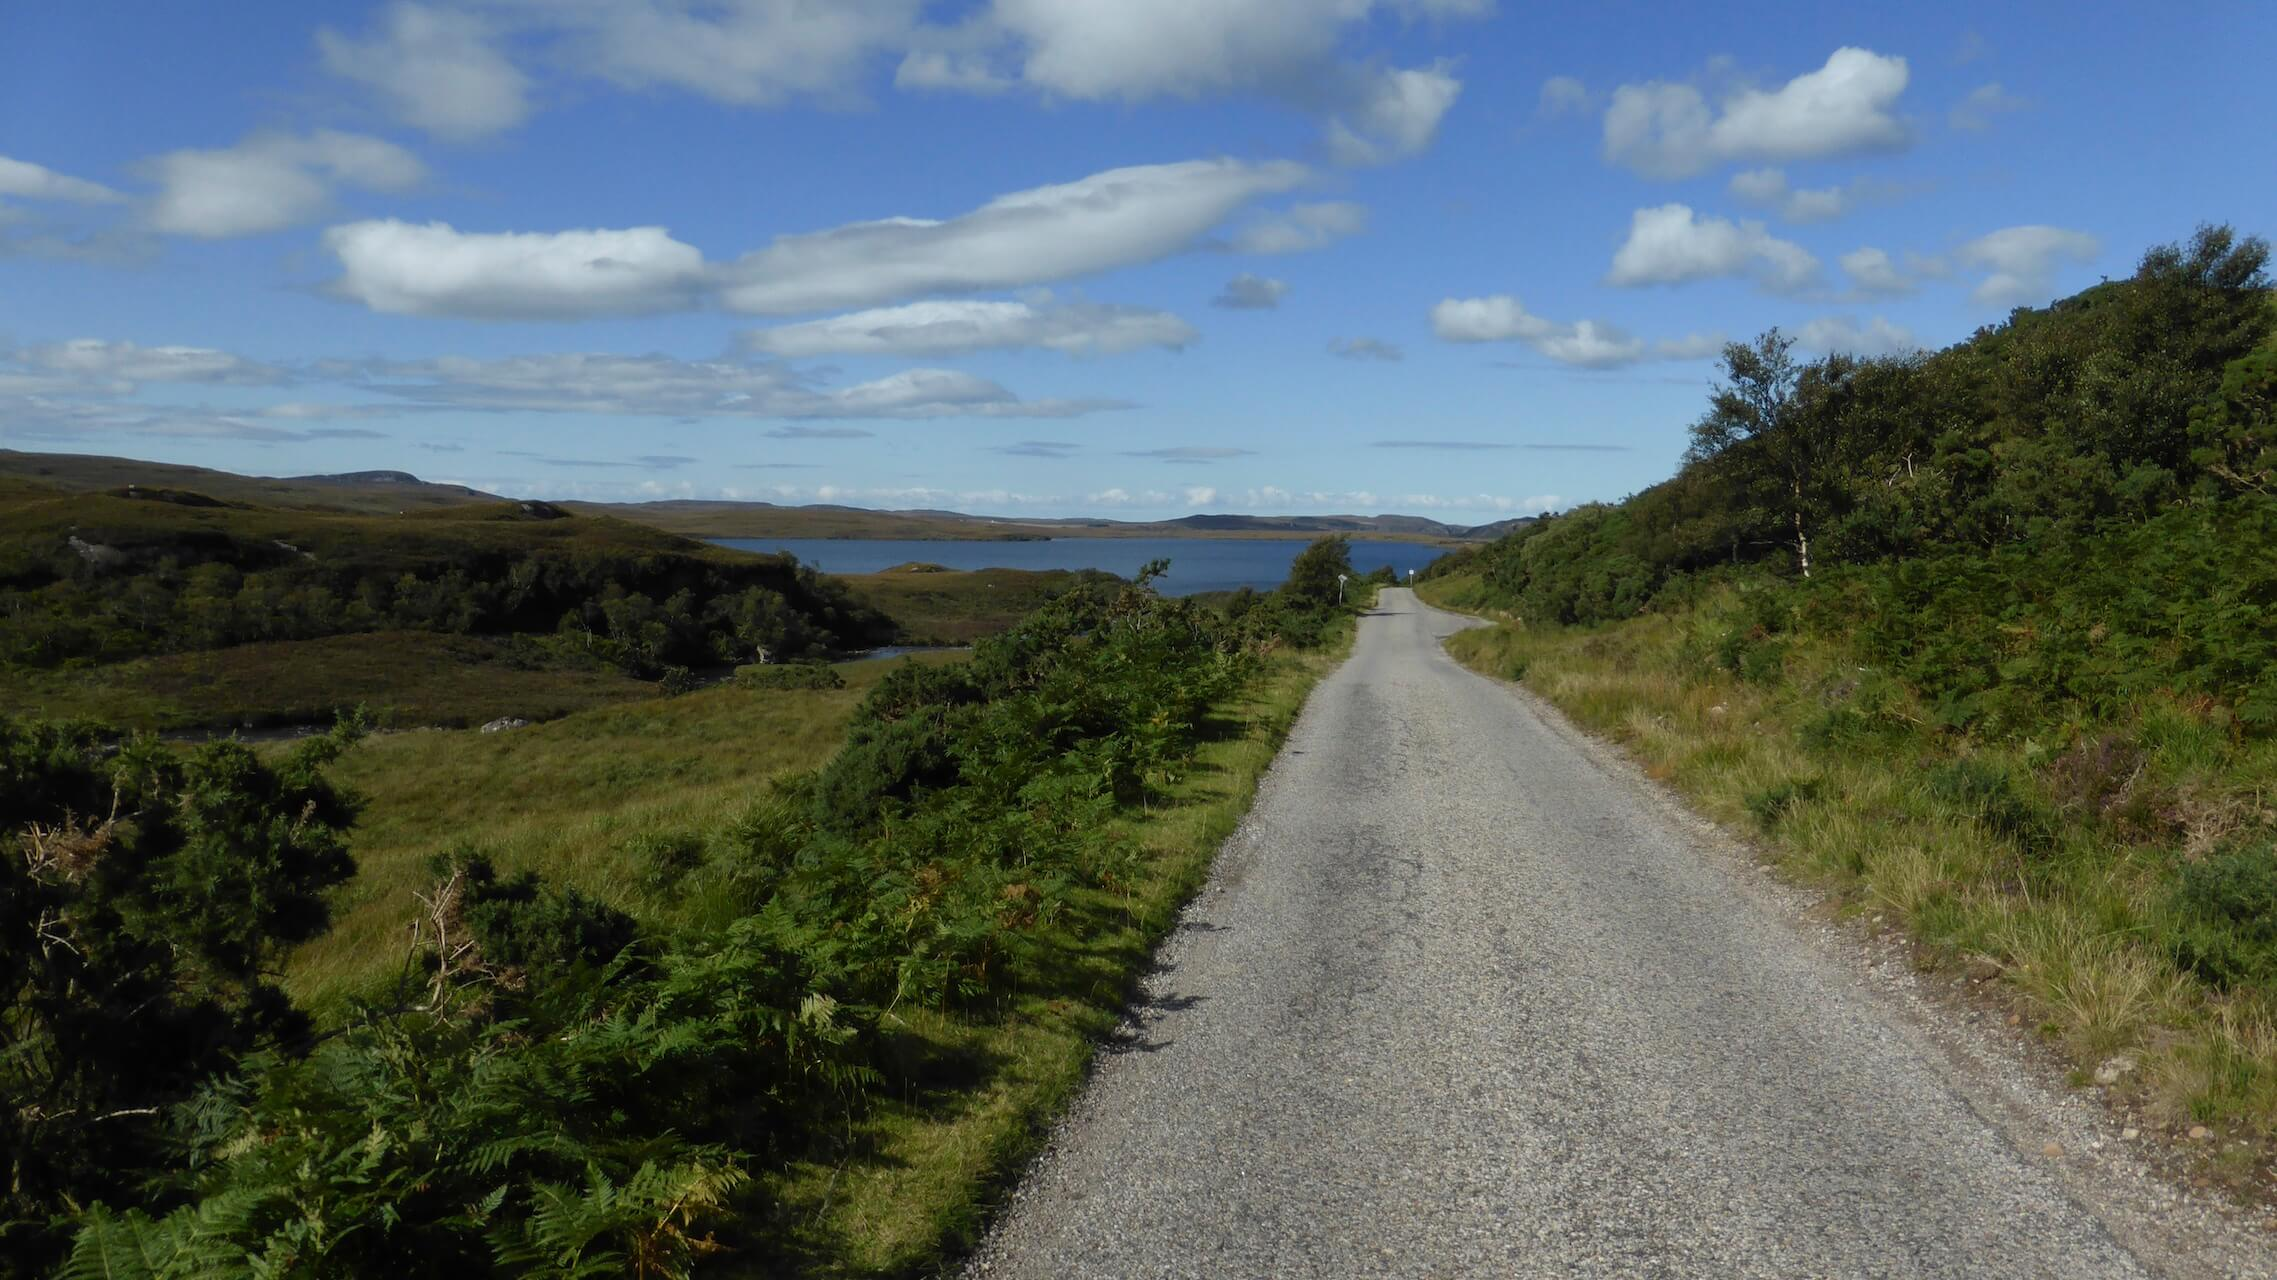 A straight single track road leads to the sea near Achiltibuie